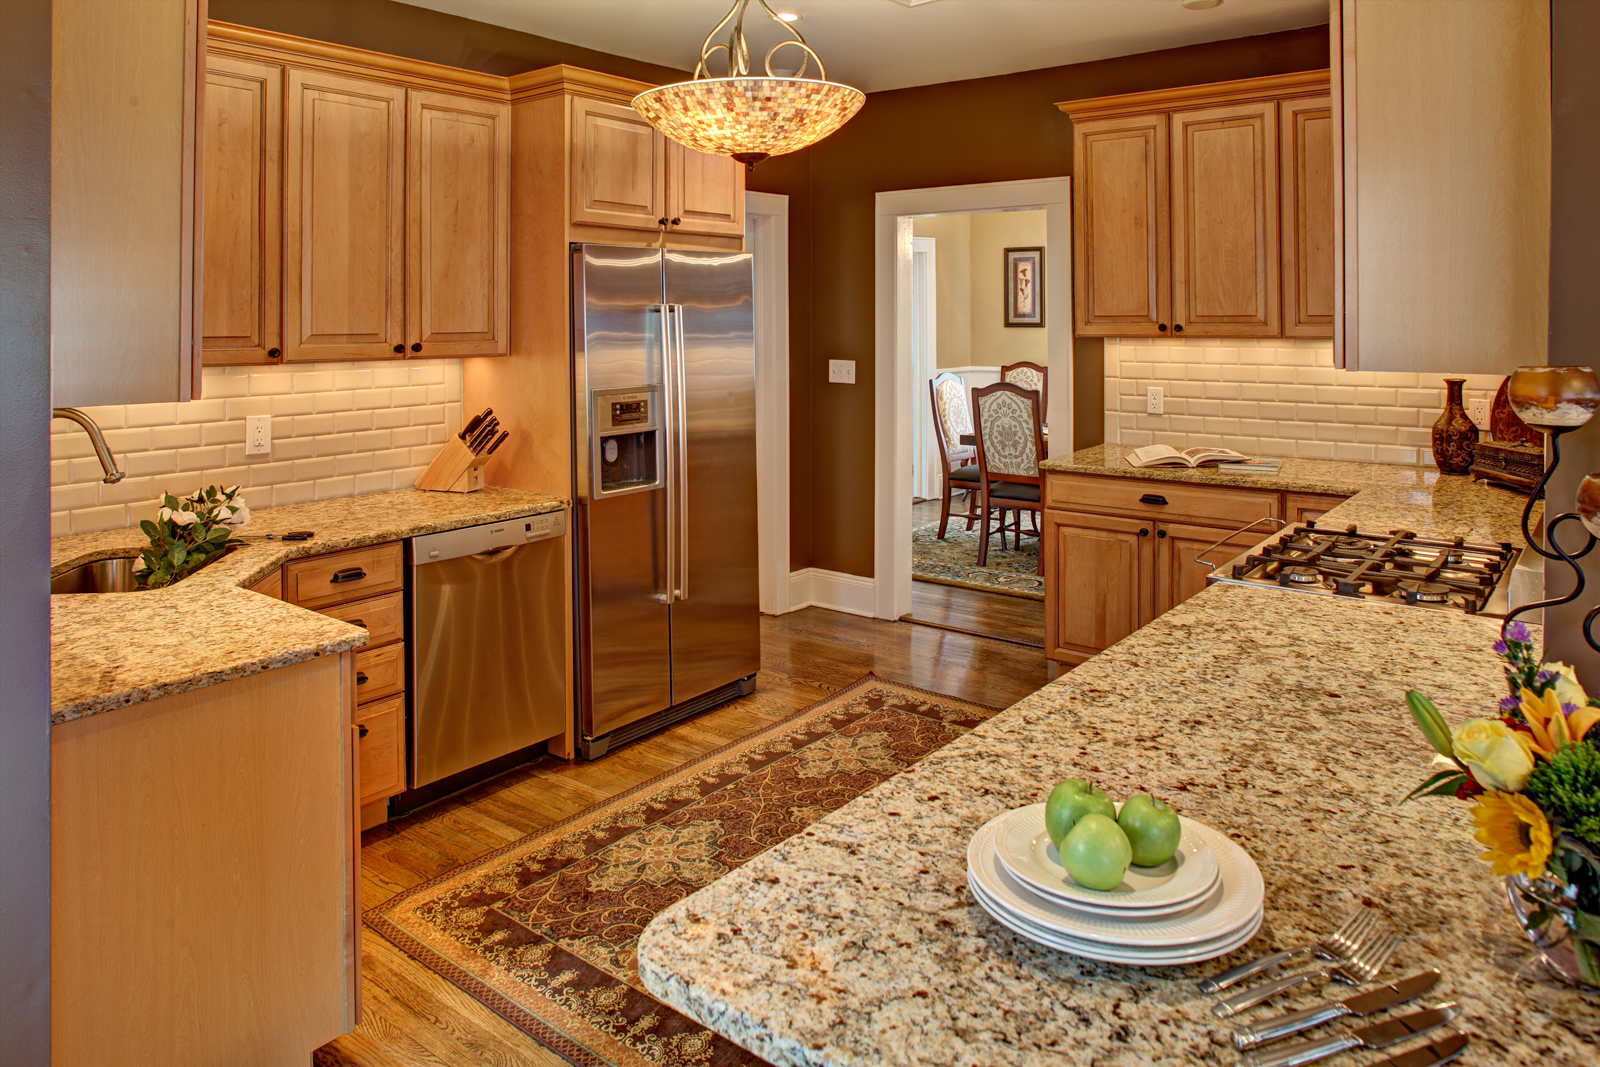 Http Artistry Interiors Com Design Advice How Much Should You Consider Resale In Remodeling Your Kitchen